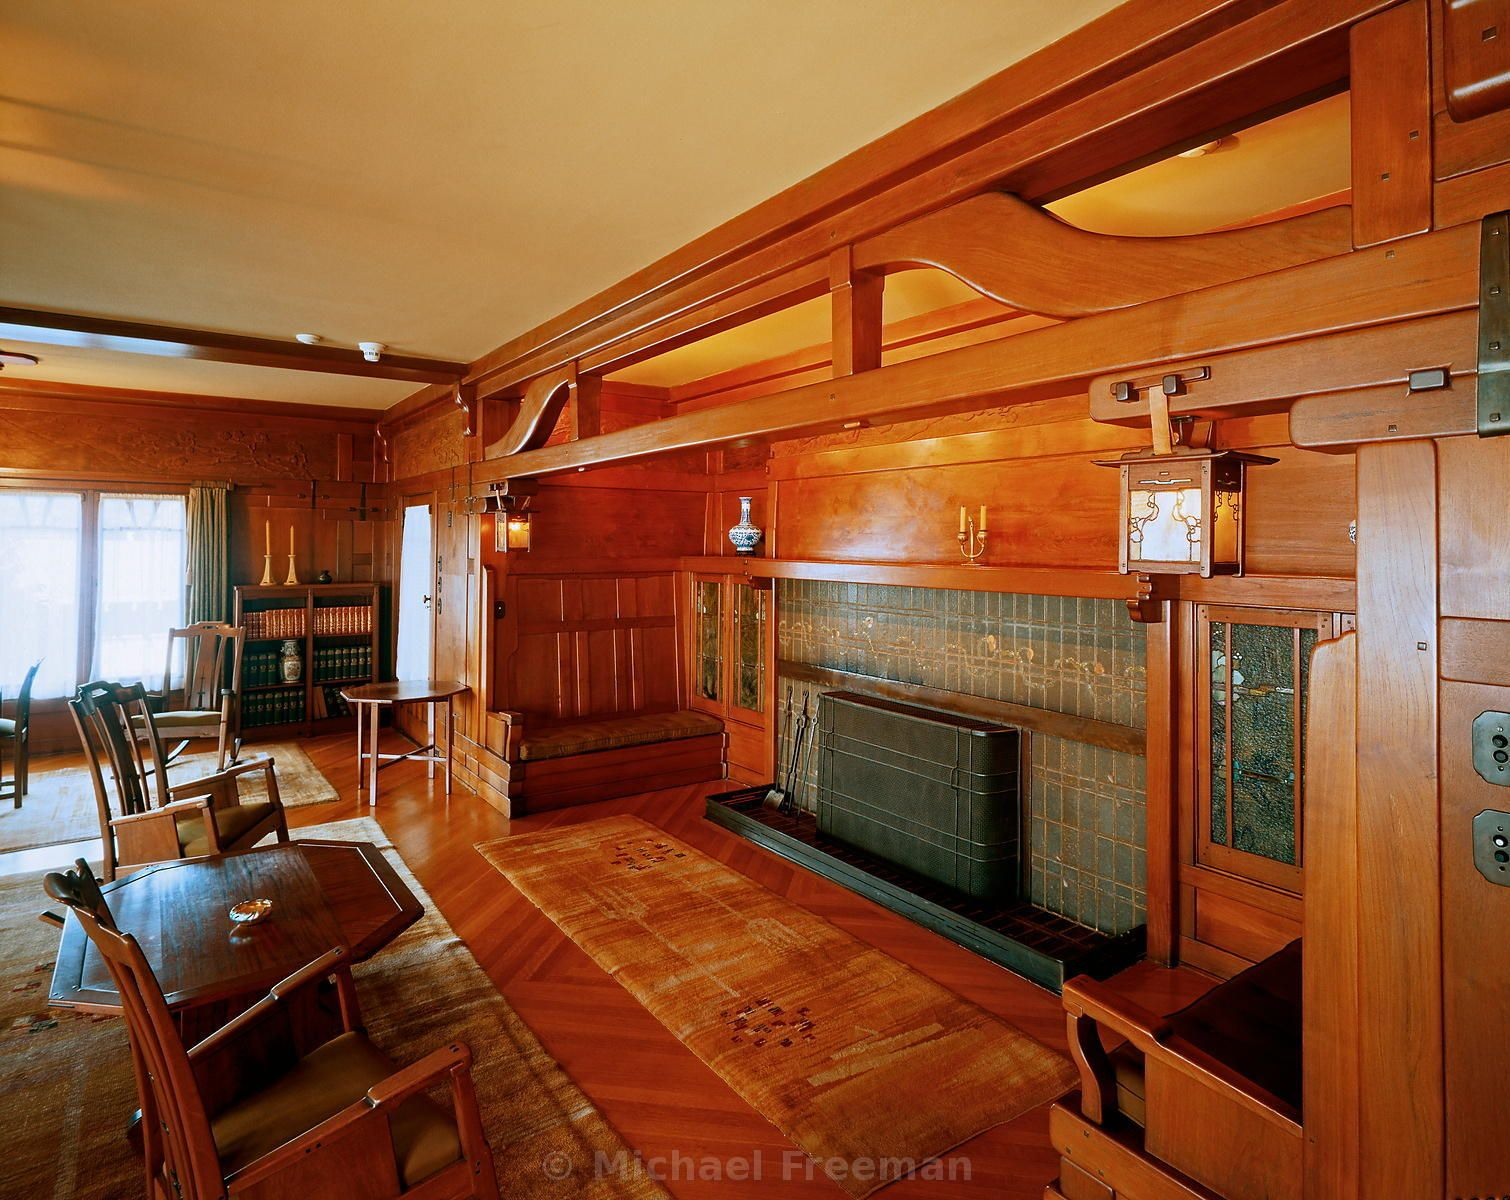 Genial Craftsman Style Interiors · Gamble House ...